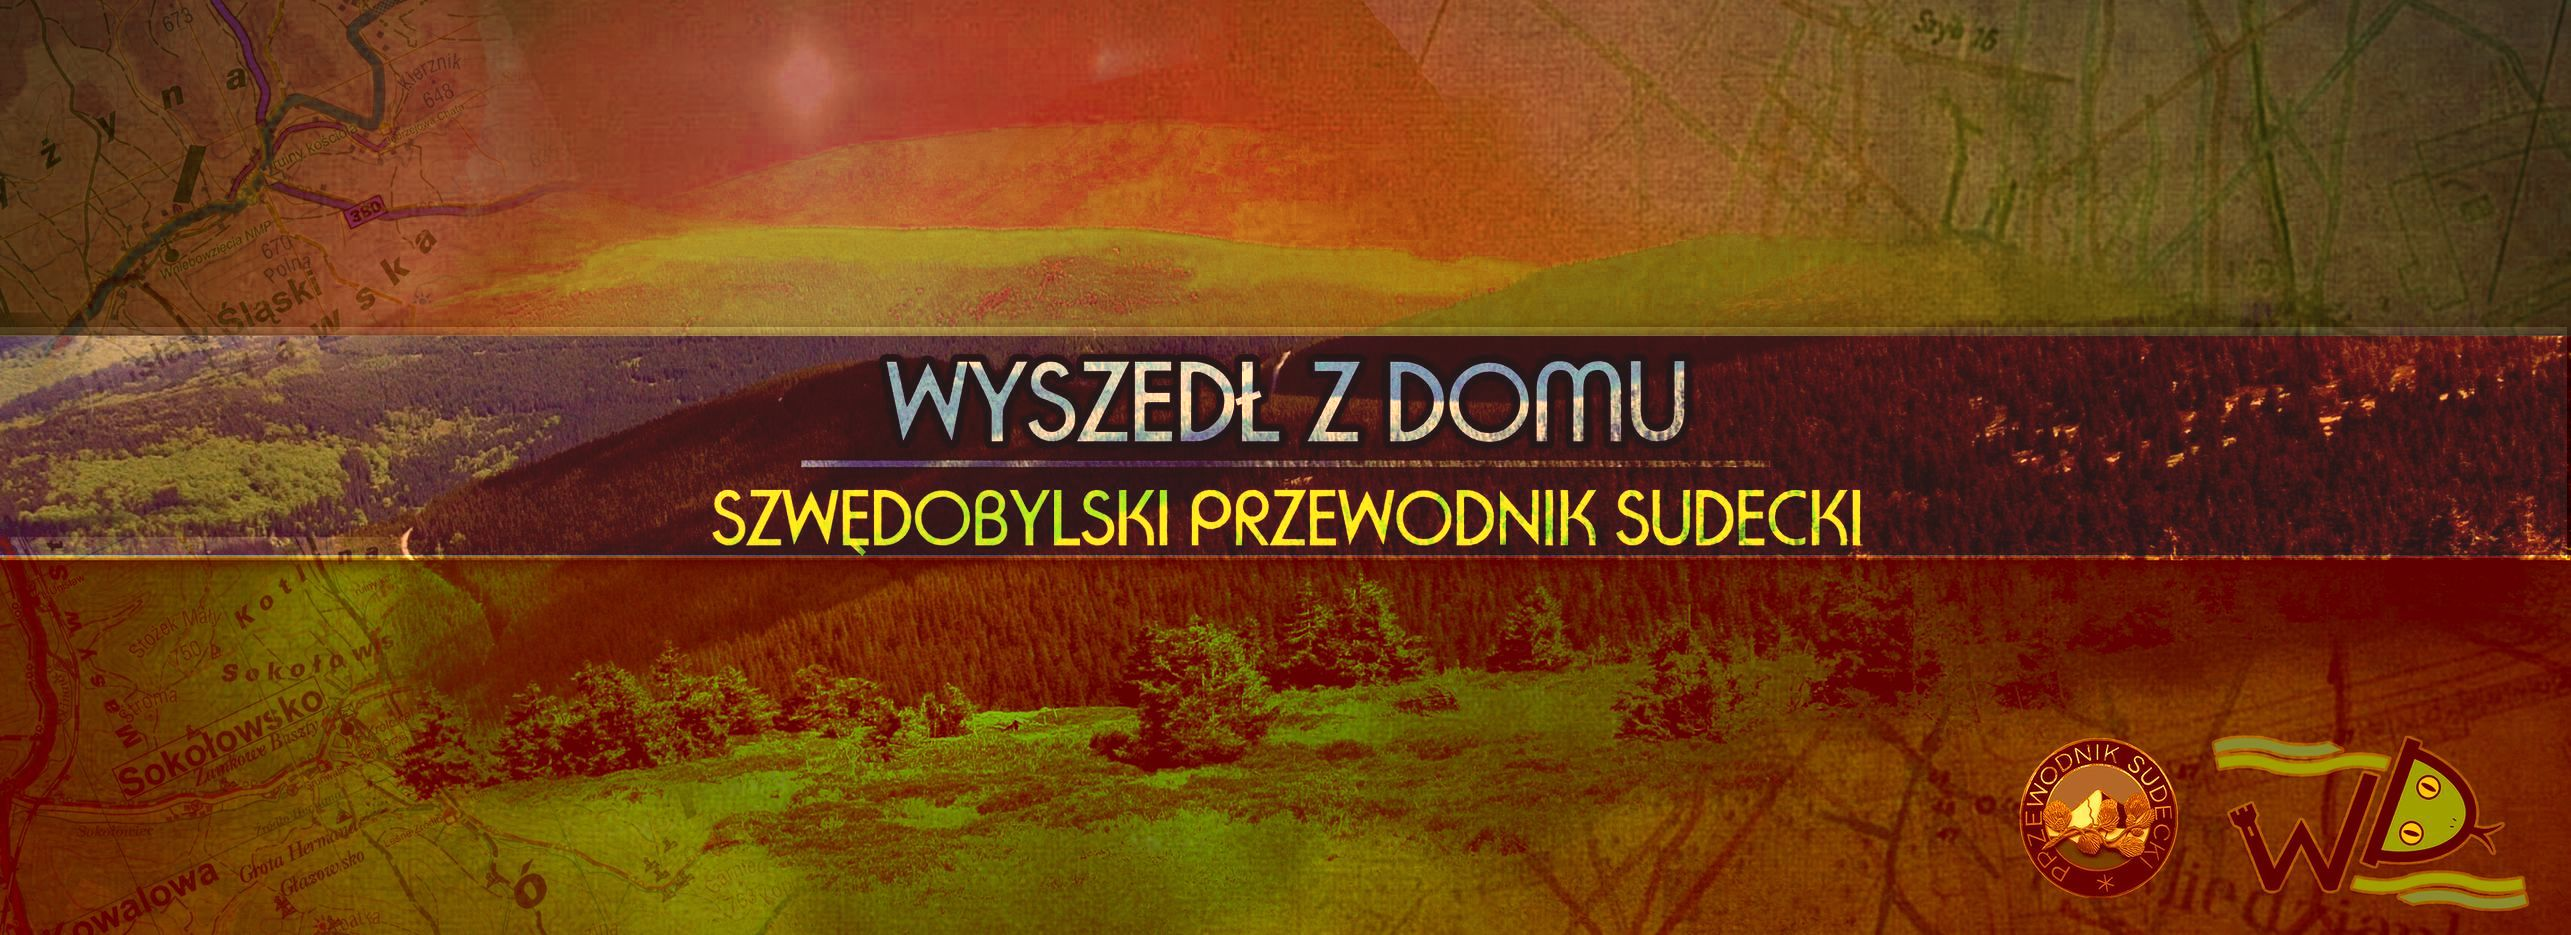 WYSZEDŁ Z DOMU